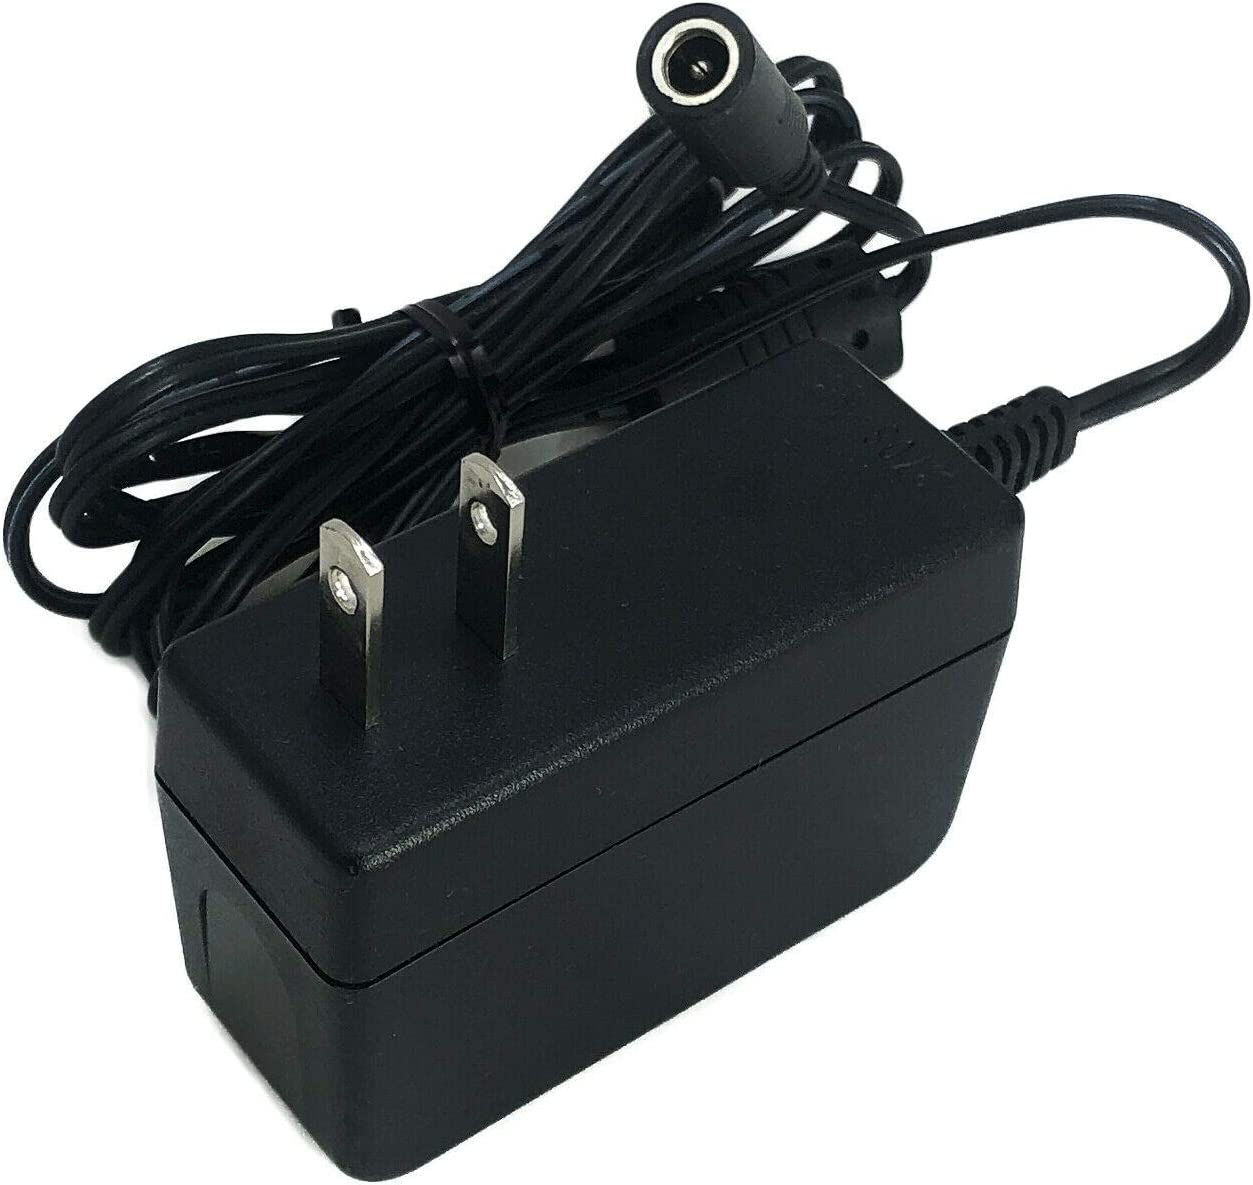 Dell - AC ADAPTER 12VDC 1500mA DELL AS500 ETC. A32Z